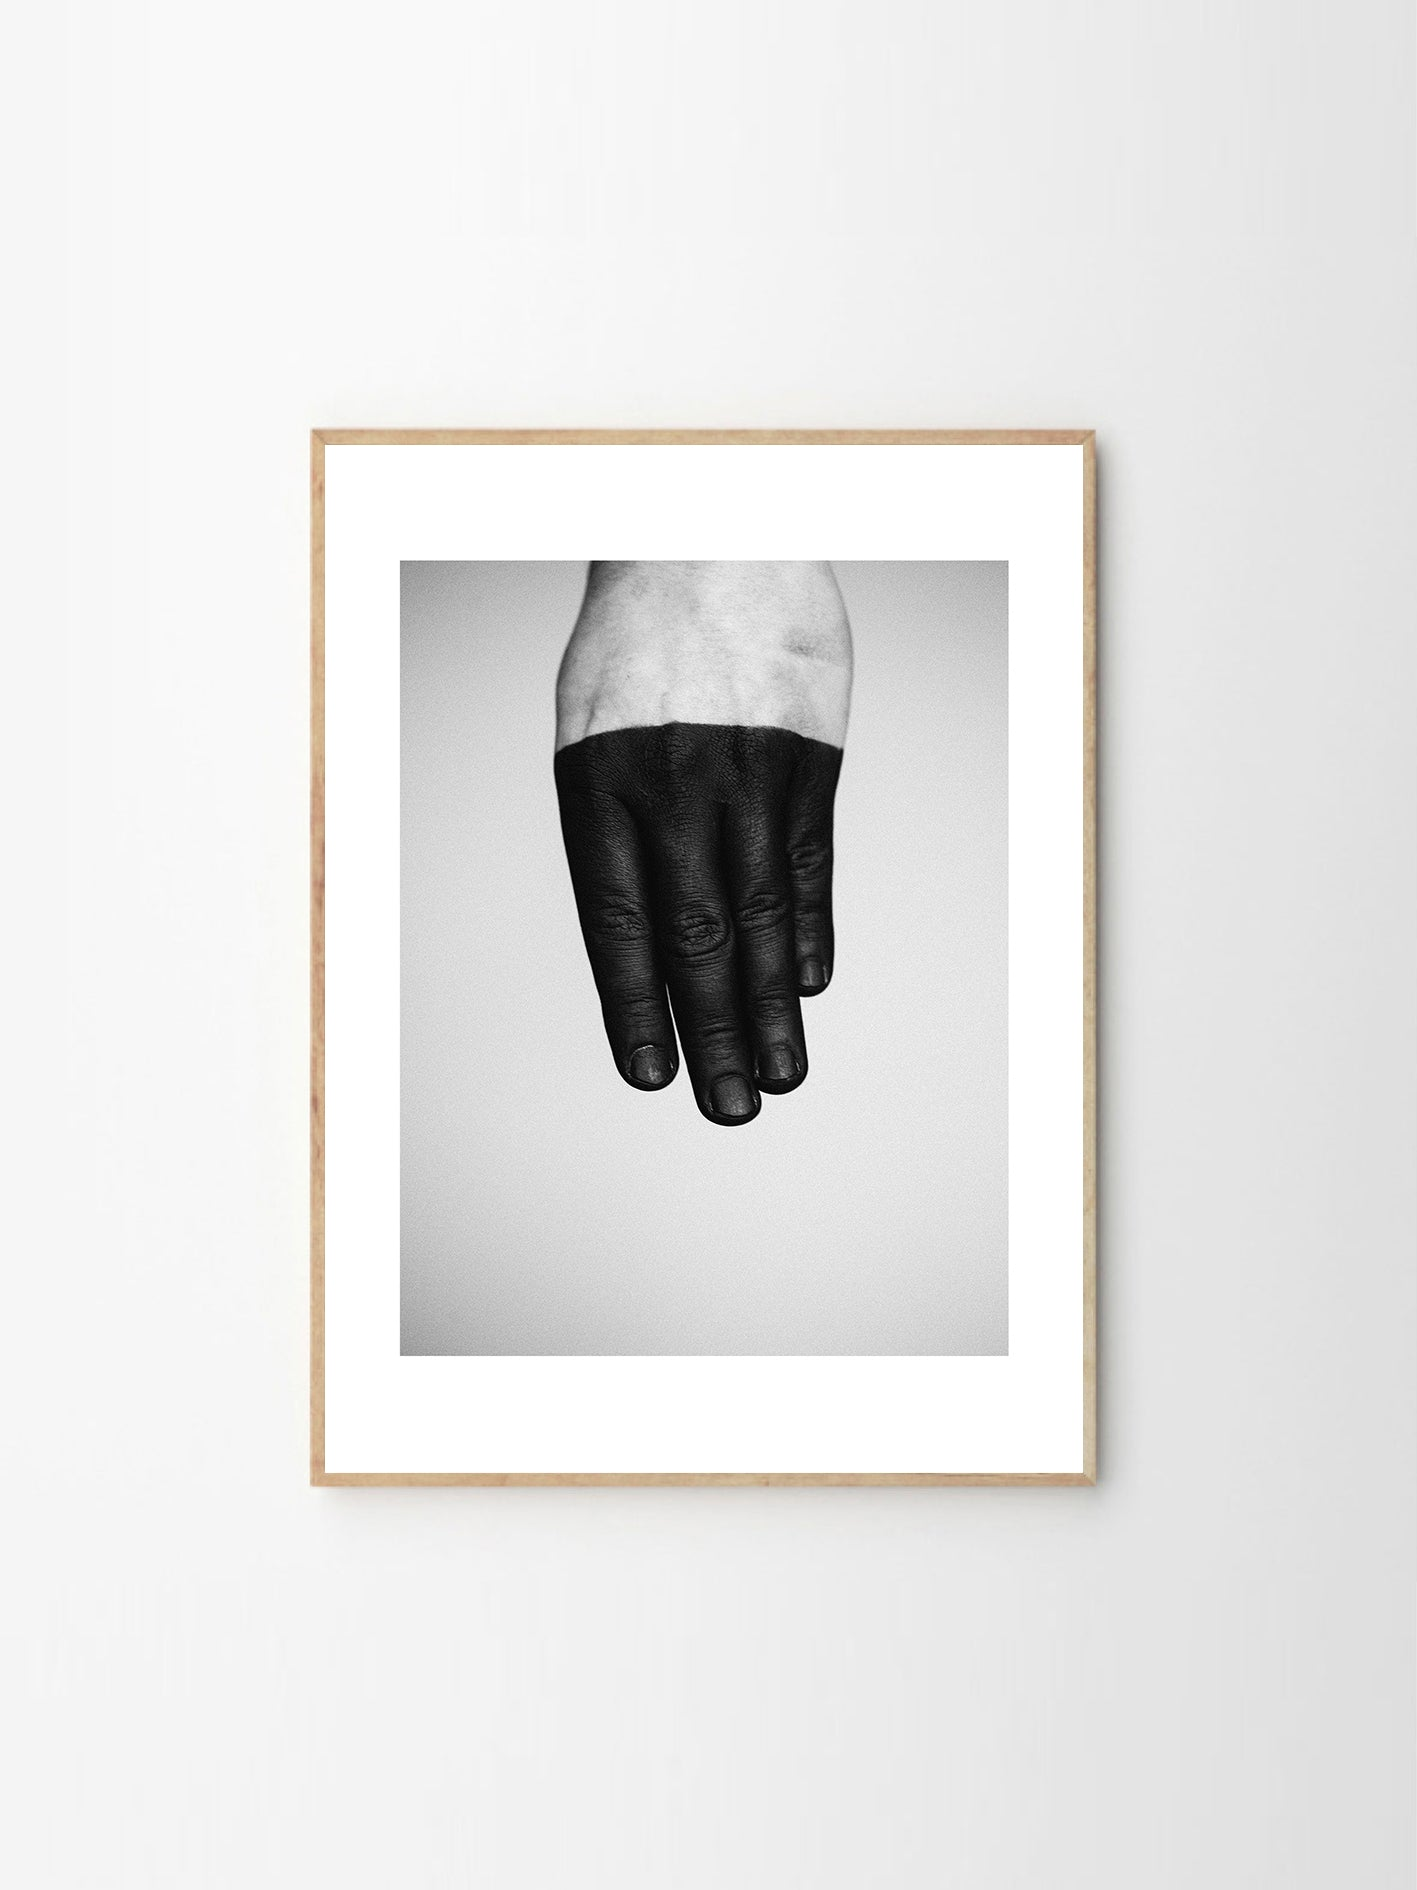 Taos_Living_The_Poster_Club_Tilde_bay_kristoffersen_black_white_hand